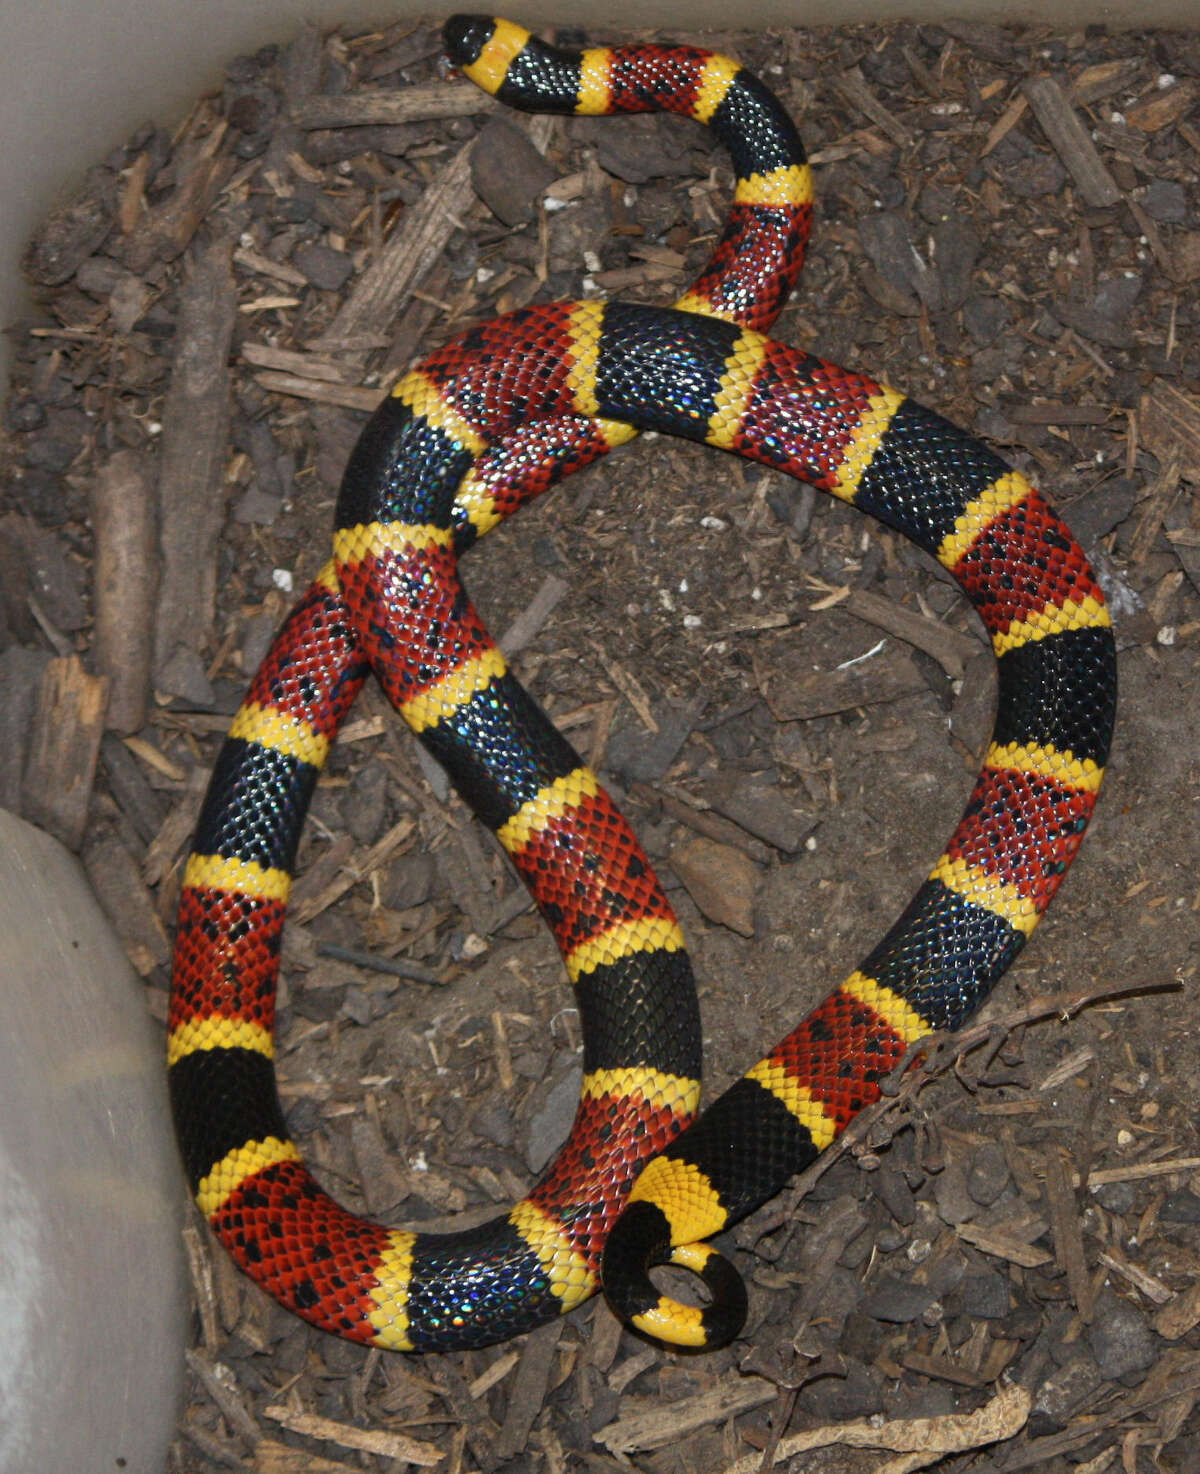 The venomous Texas coral snake prefers to avoid humans.